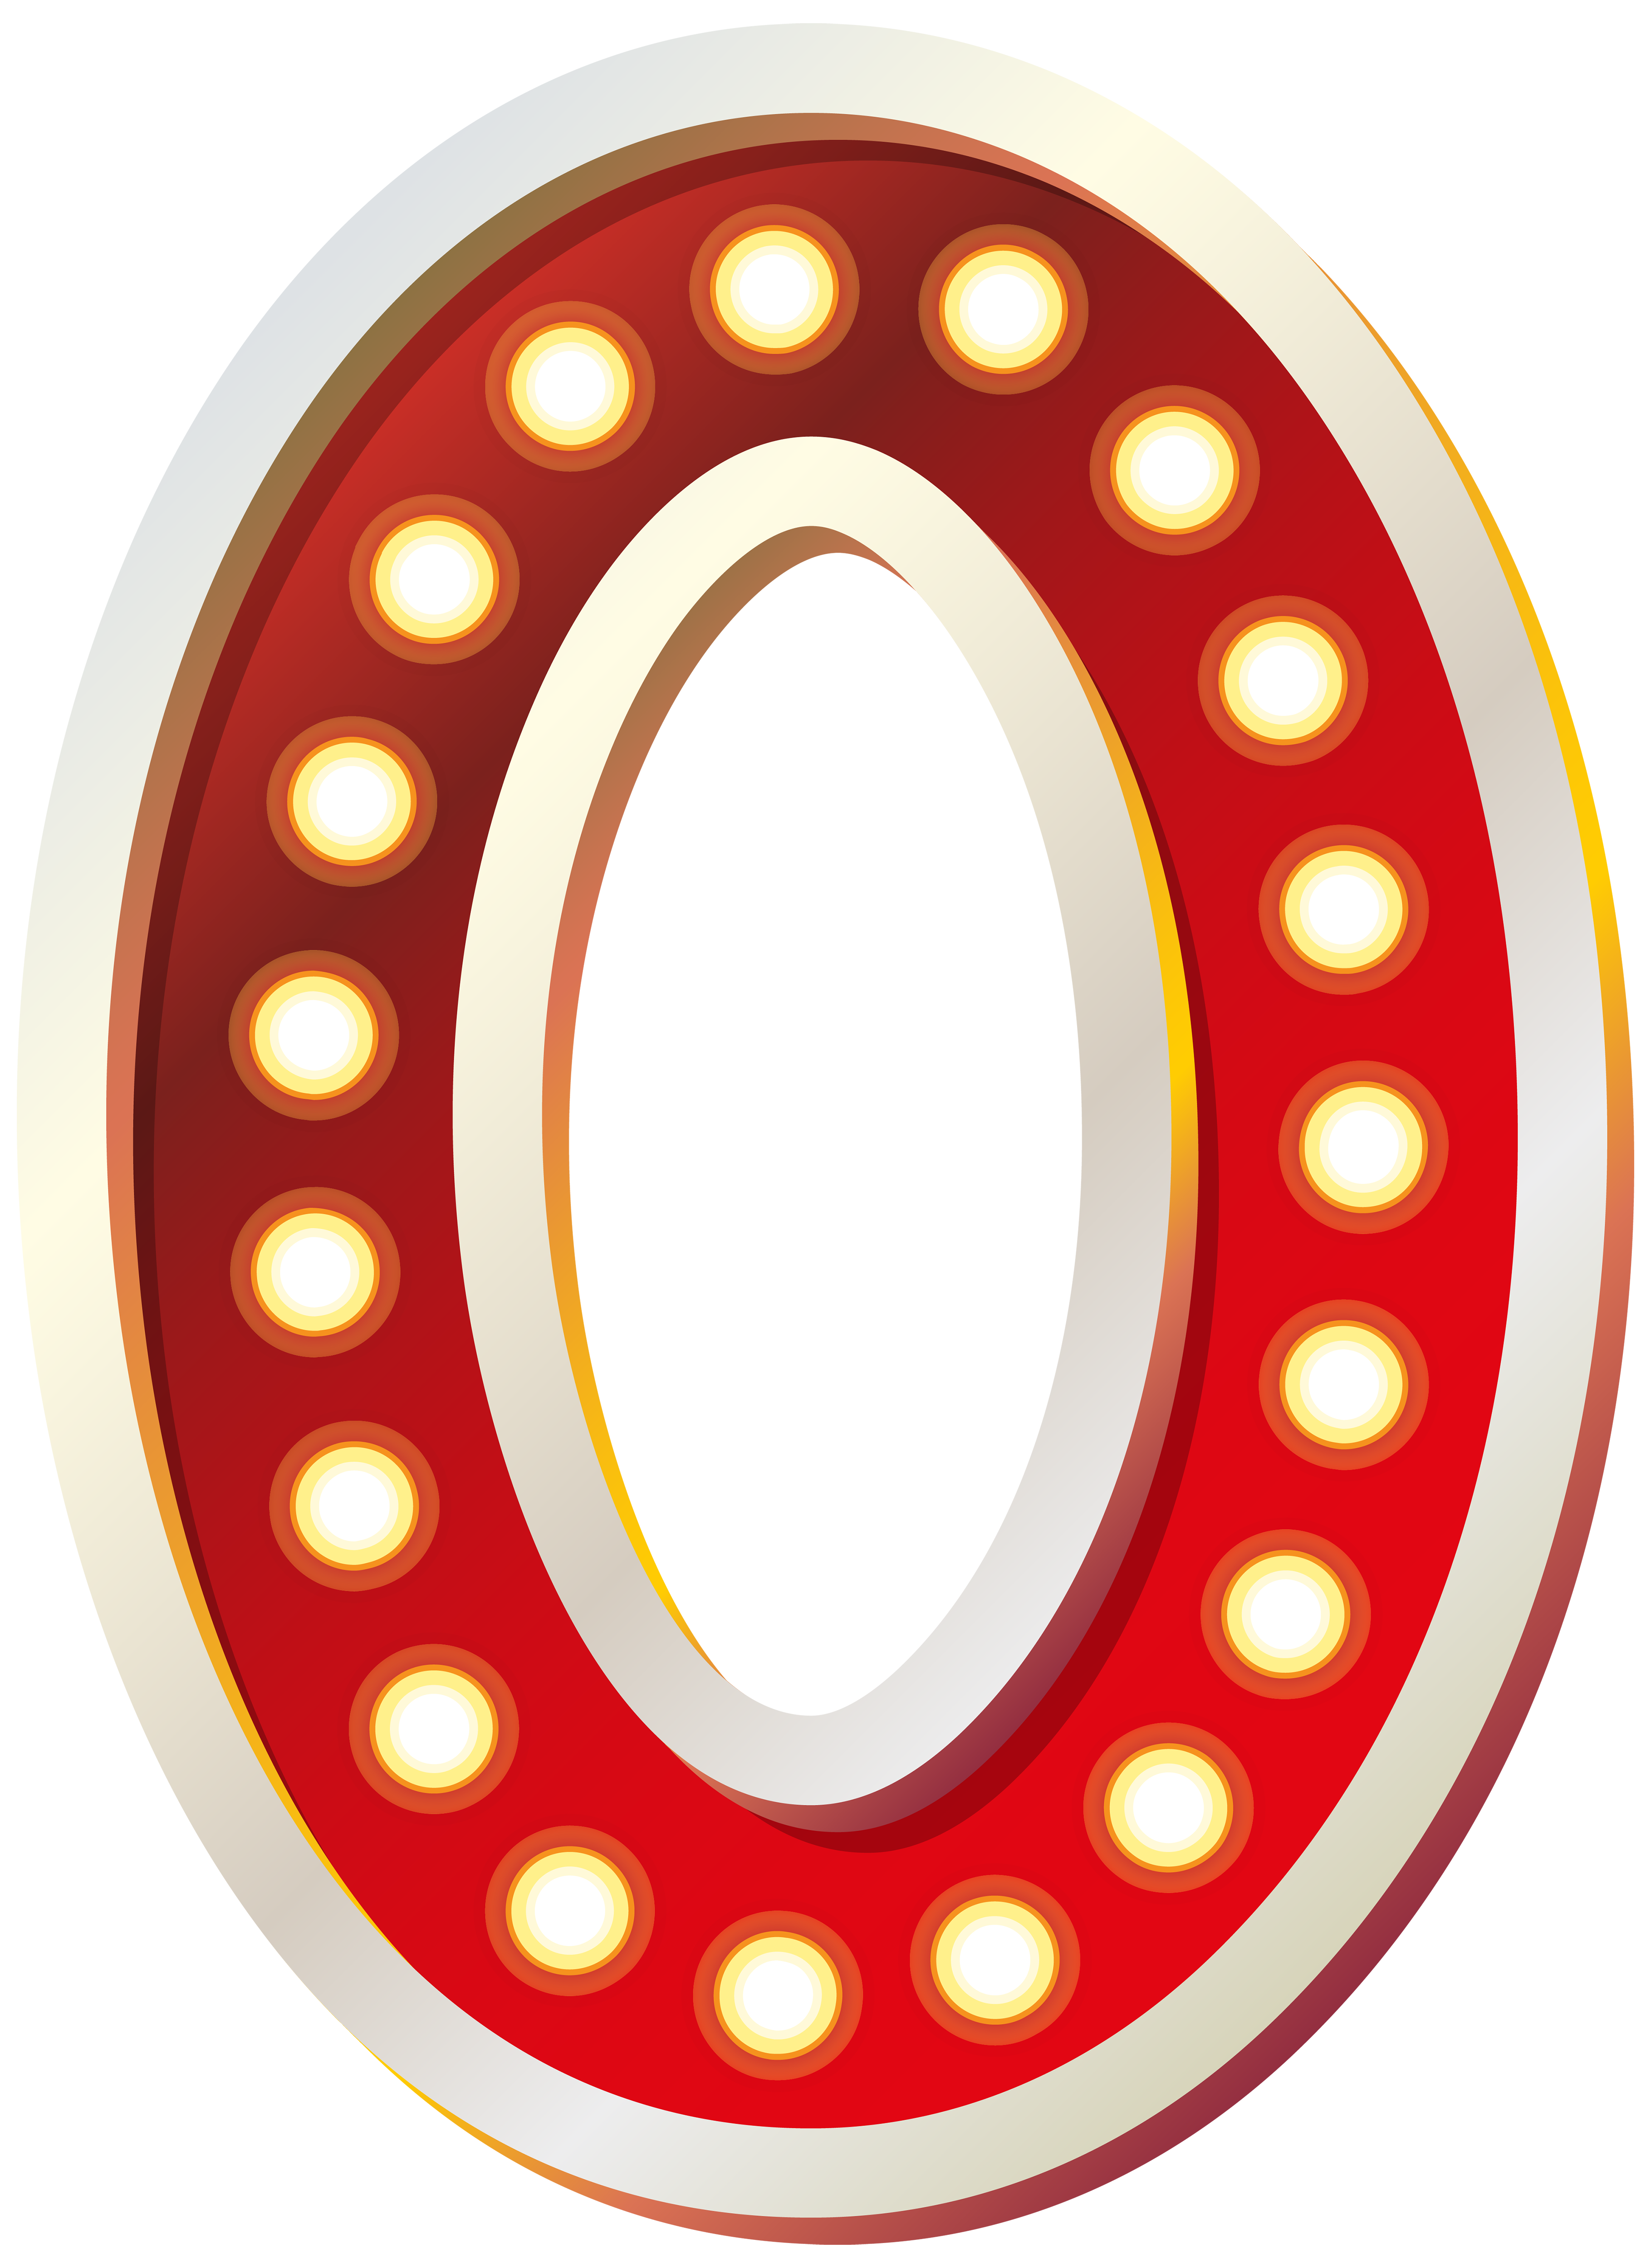 Zero transparent clipart. Red number with lights